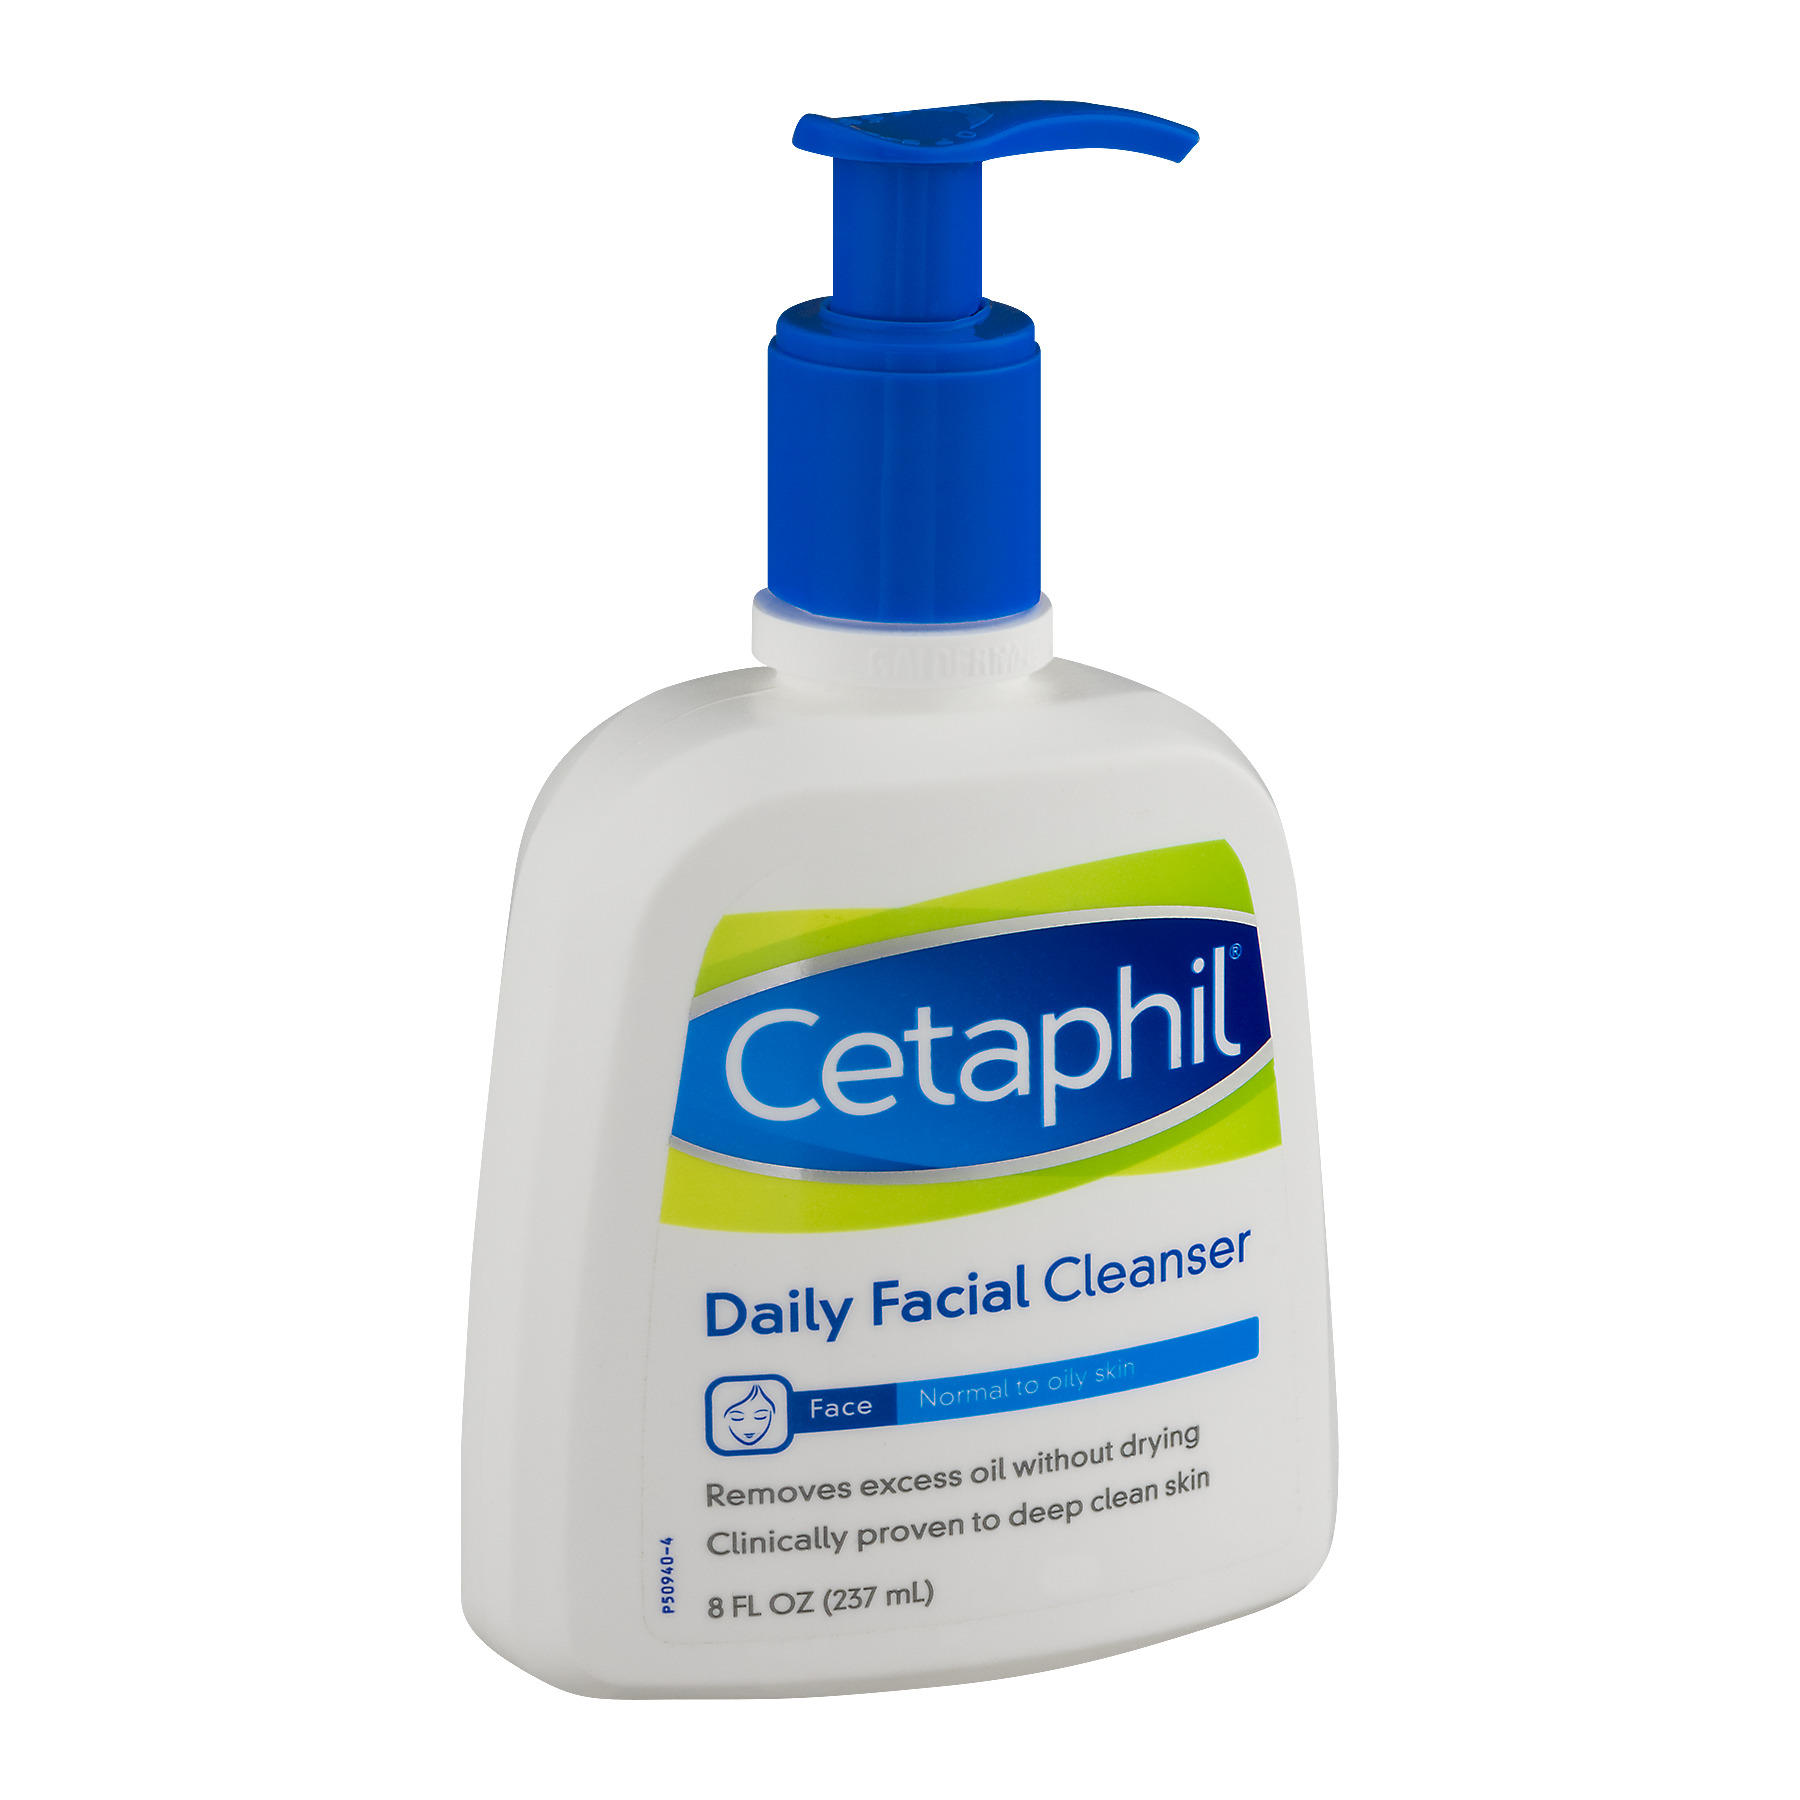 Cetaphil Daily Facial Cleanser for Normal/Oily Skin 8 oz (Pack of 2) Filfeel Electric Blackhead Remover Facial Skin Pore Cleaner Acne Nose Blackhead Suction Remover with 4 Replaceable Suction Heads Comedo Suction Diamond Dermabrasion White